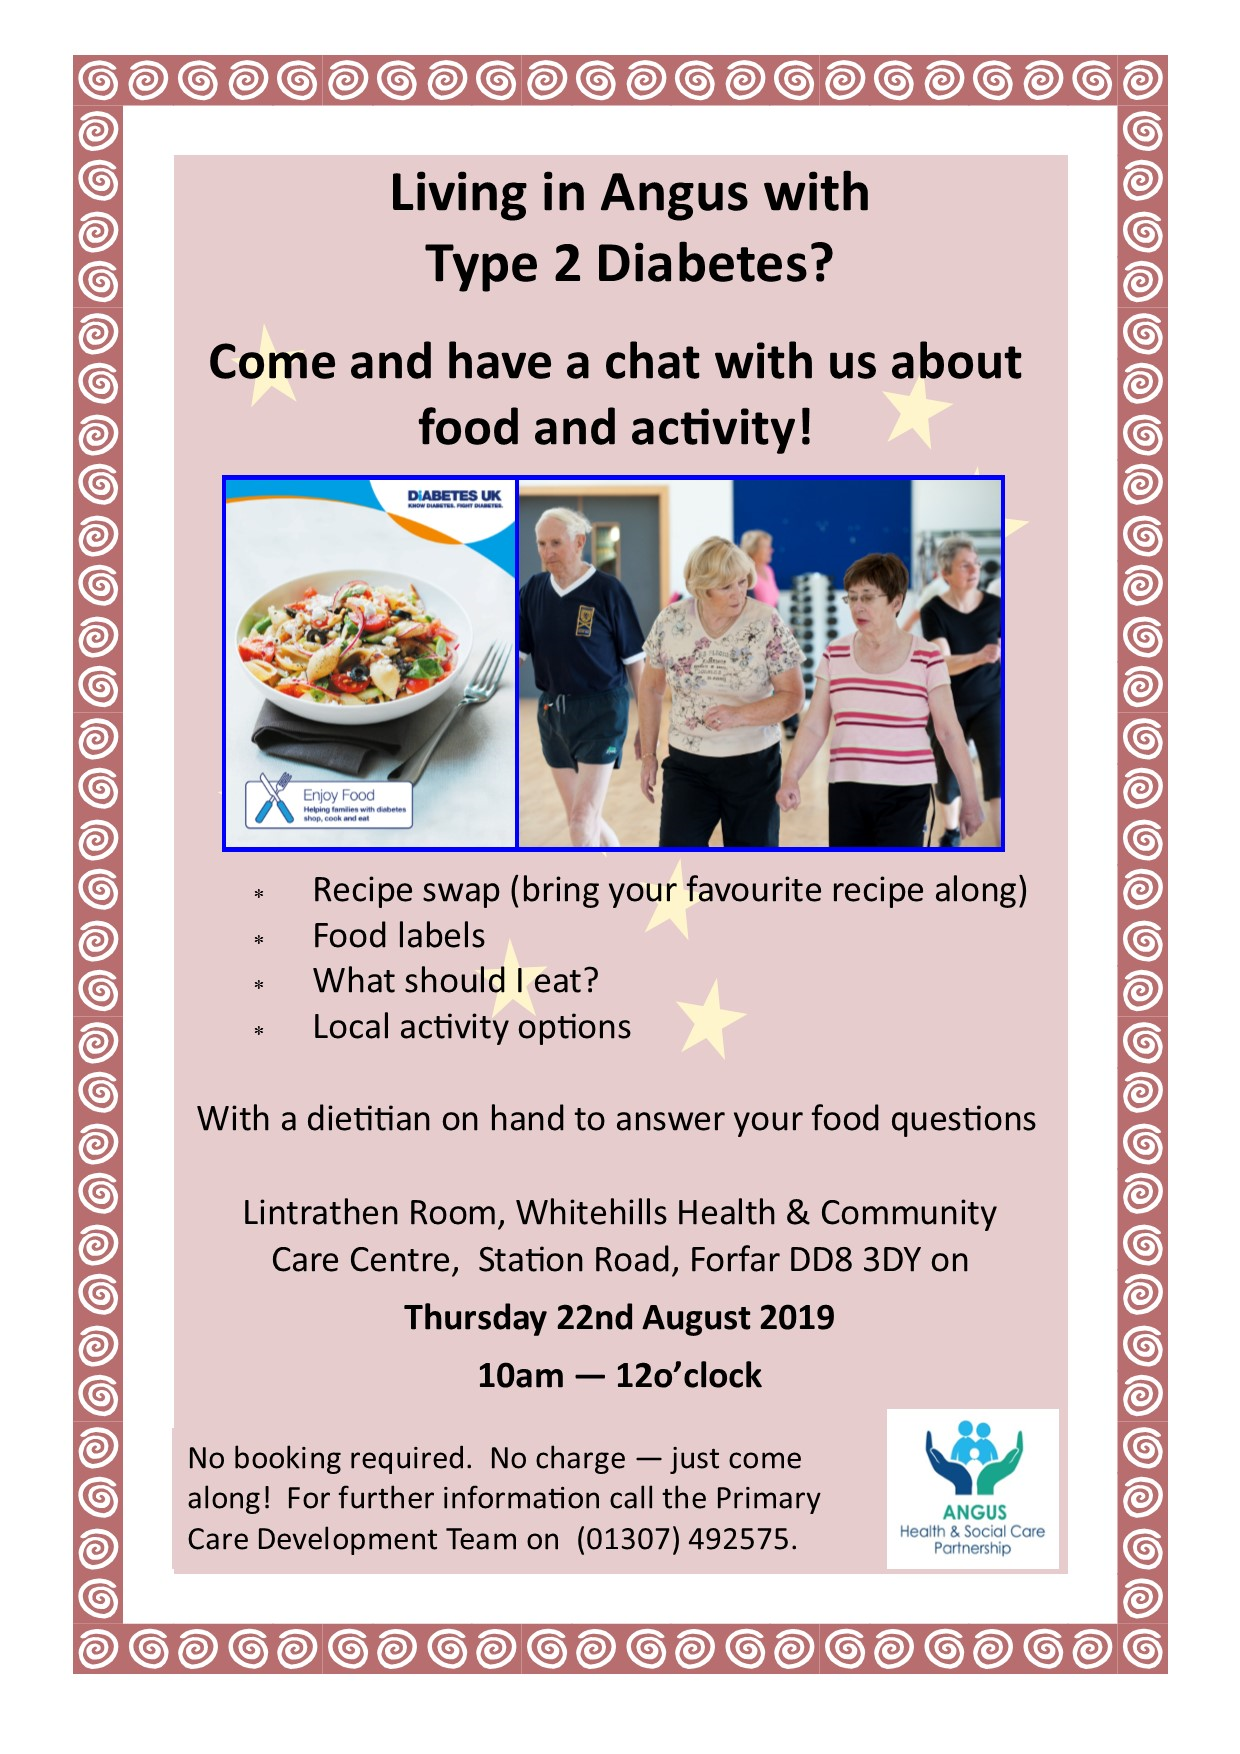 Living in Angus with Type 2 Diabetes Thursday 22nd August 2019